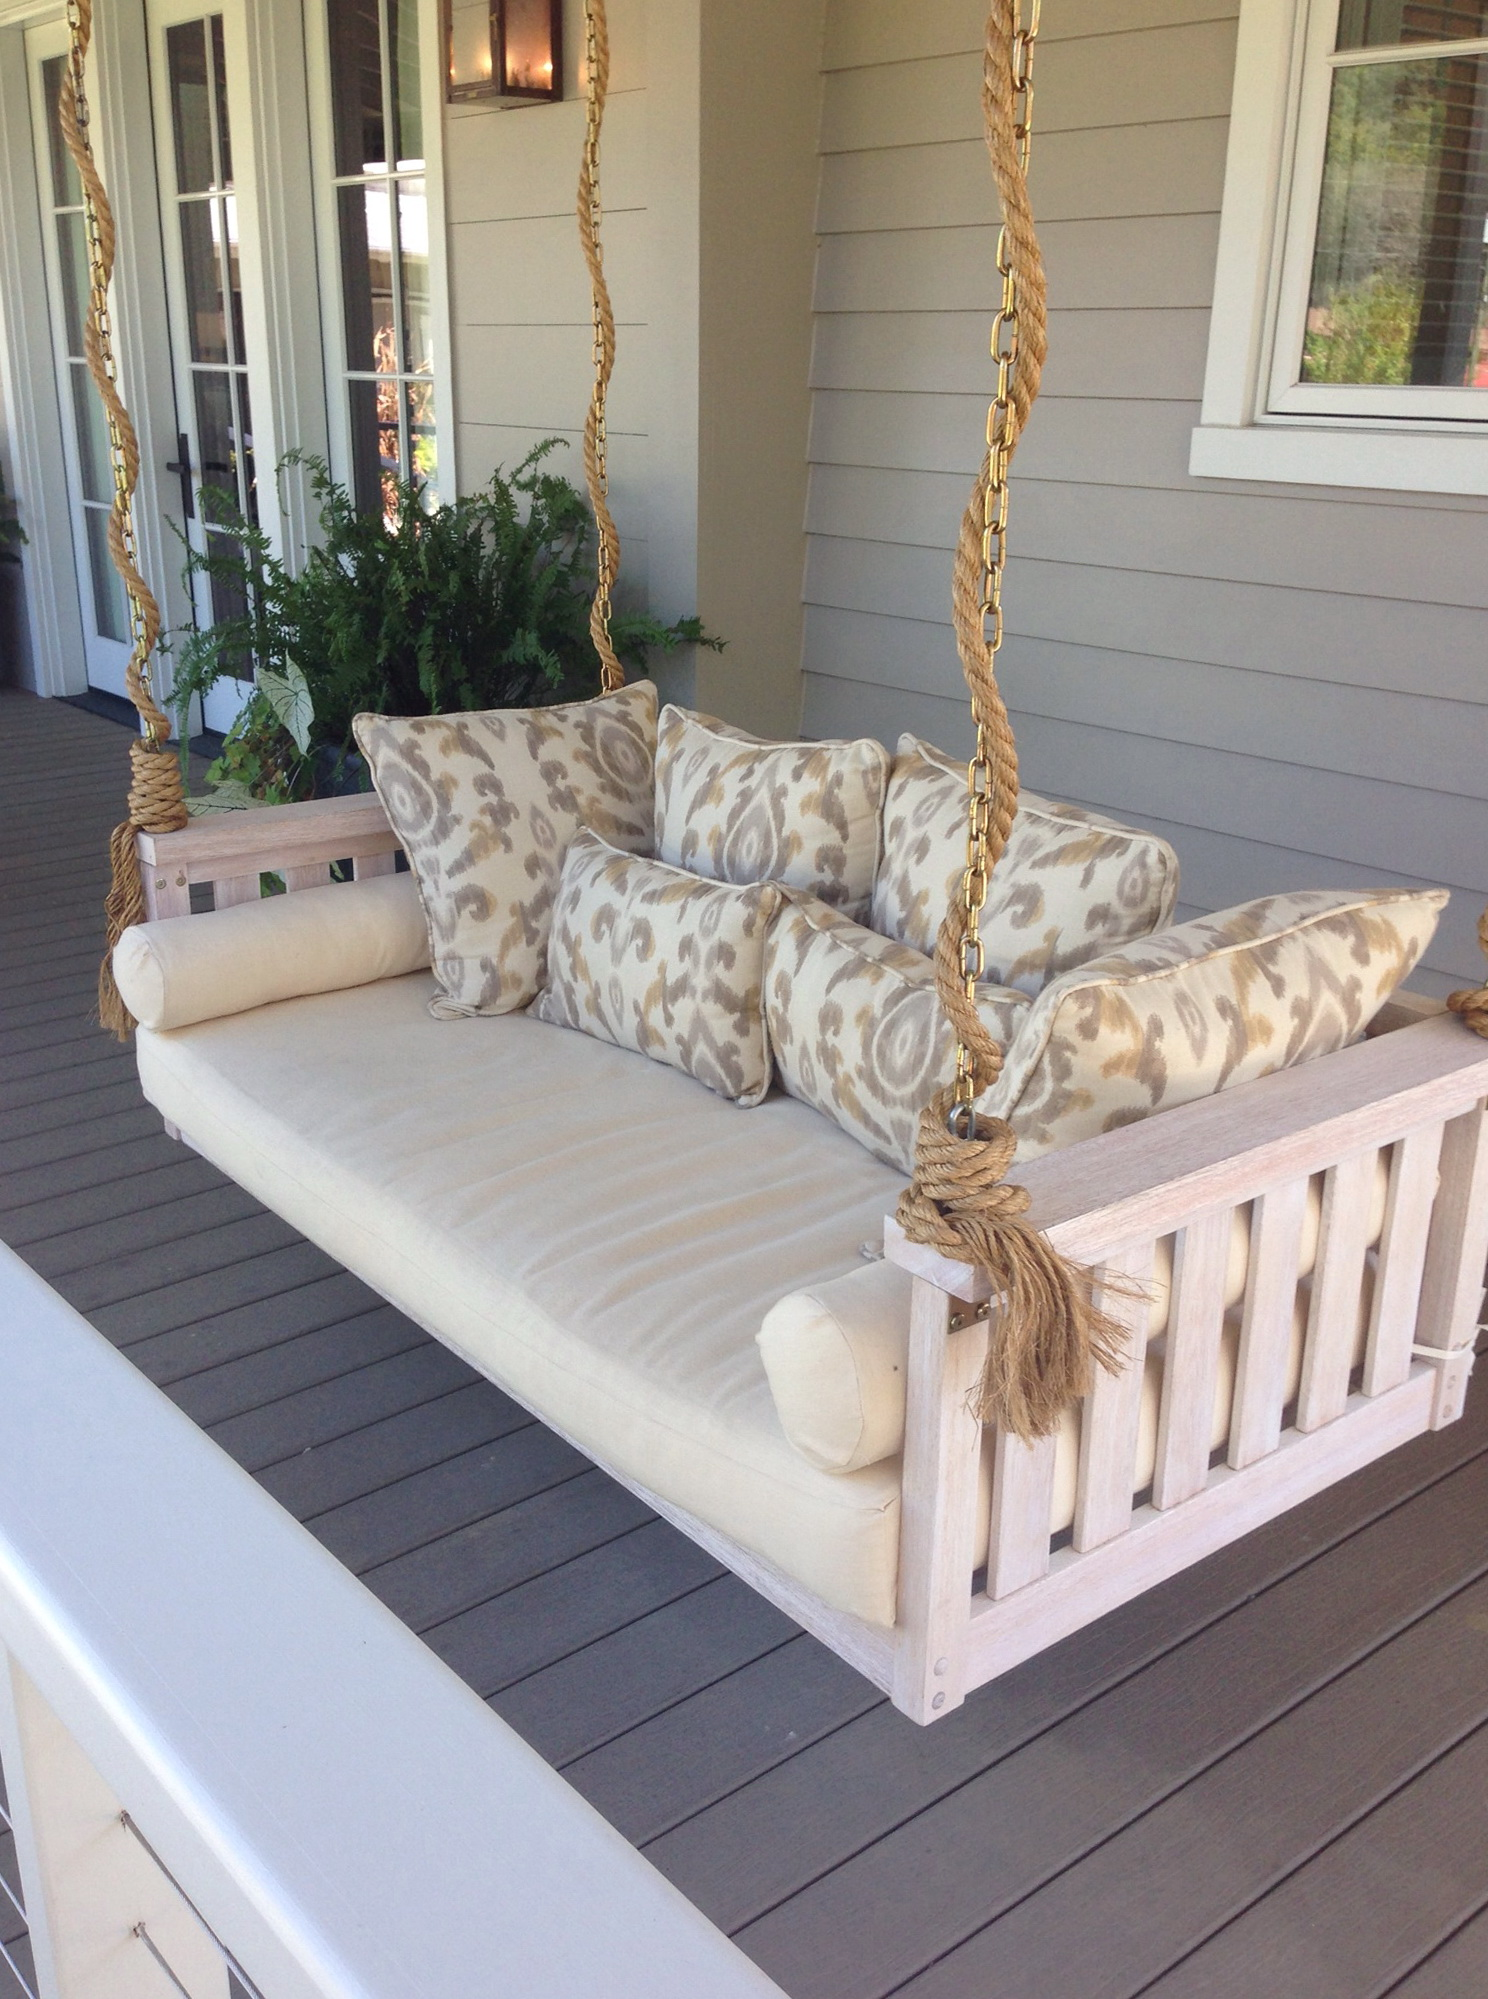 info amish beds charleston wicker bed sale buy large swing round for medpharmjobs porch